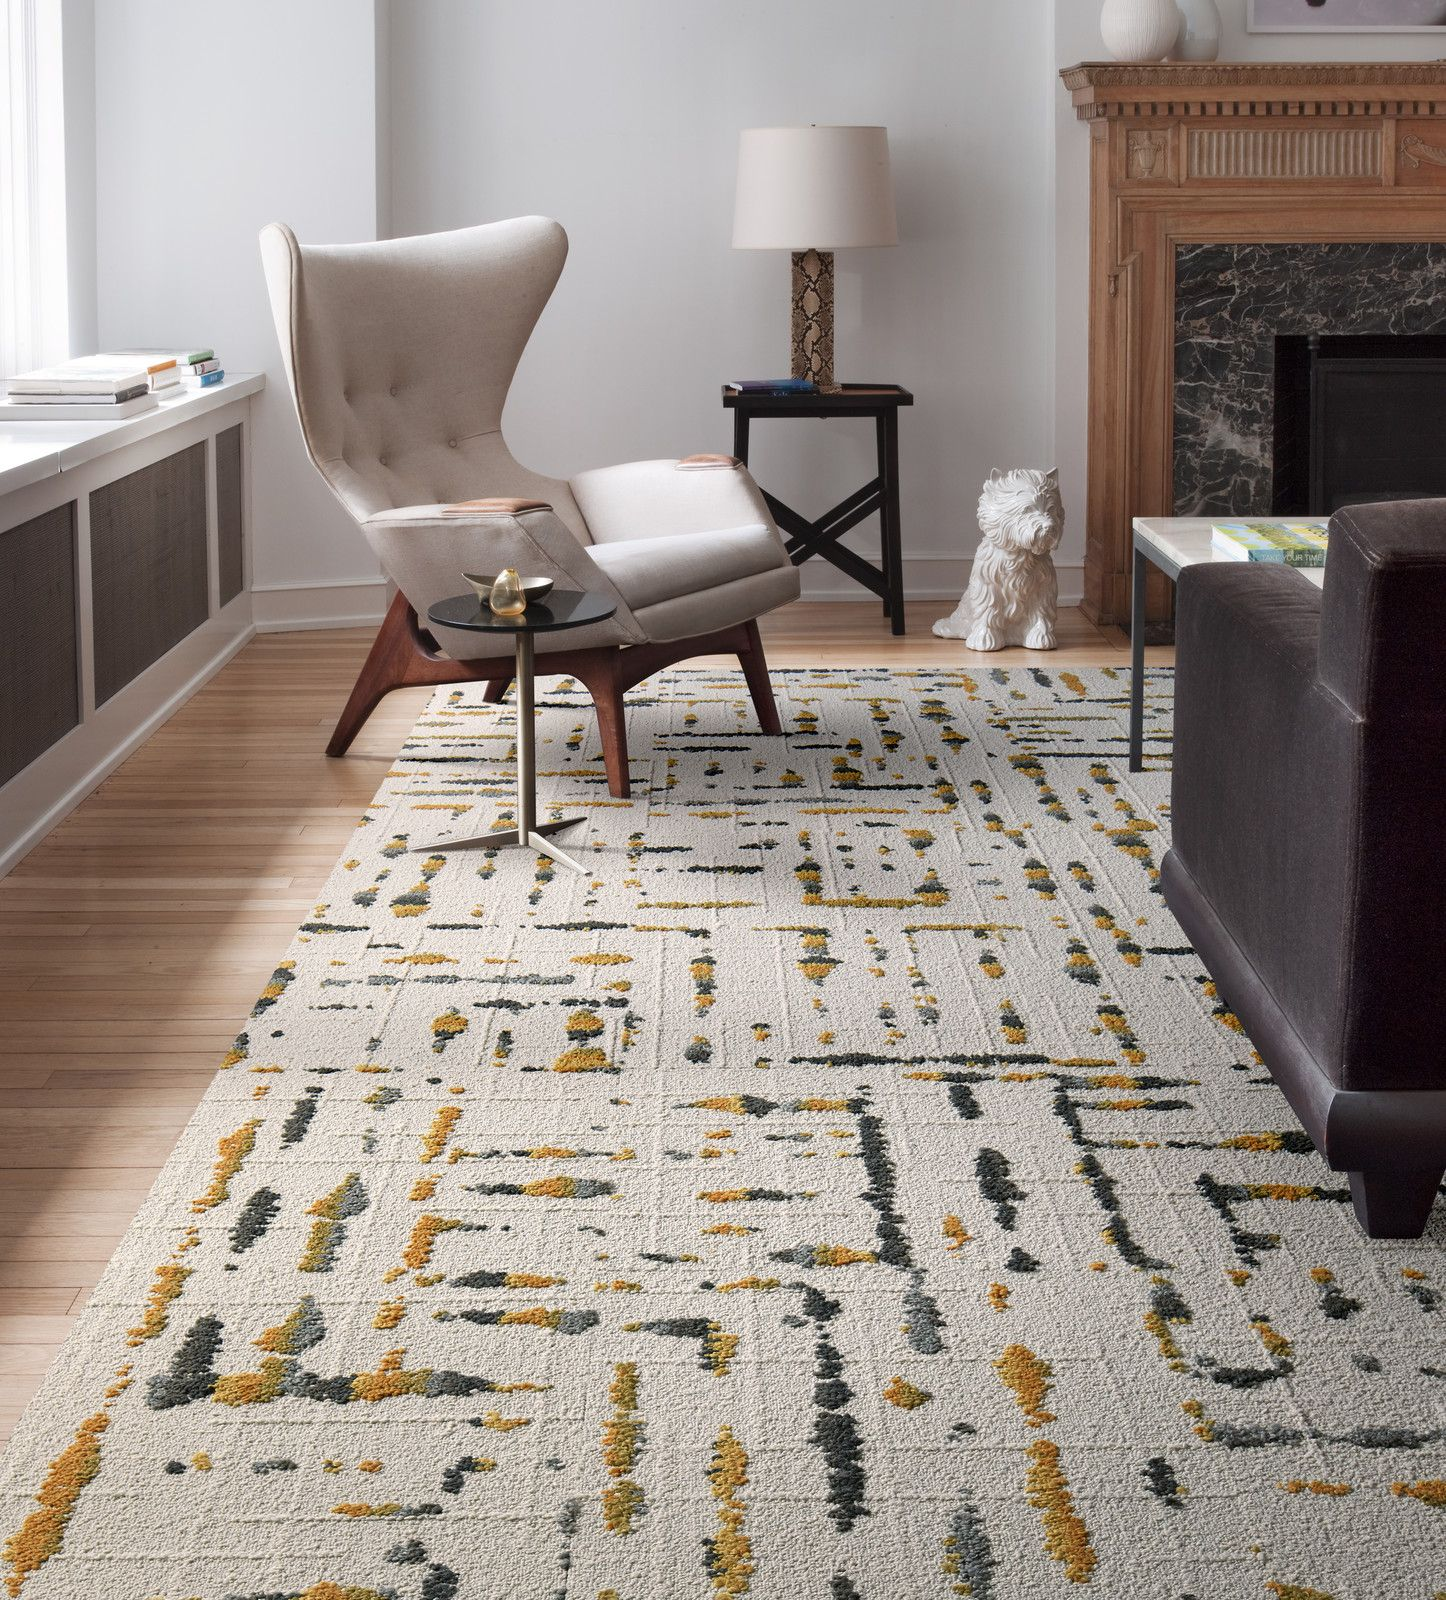 Carpet Tile At Flor: Mix And Match The New FLOR Rug Styles To Your Heart's